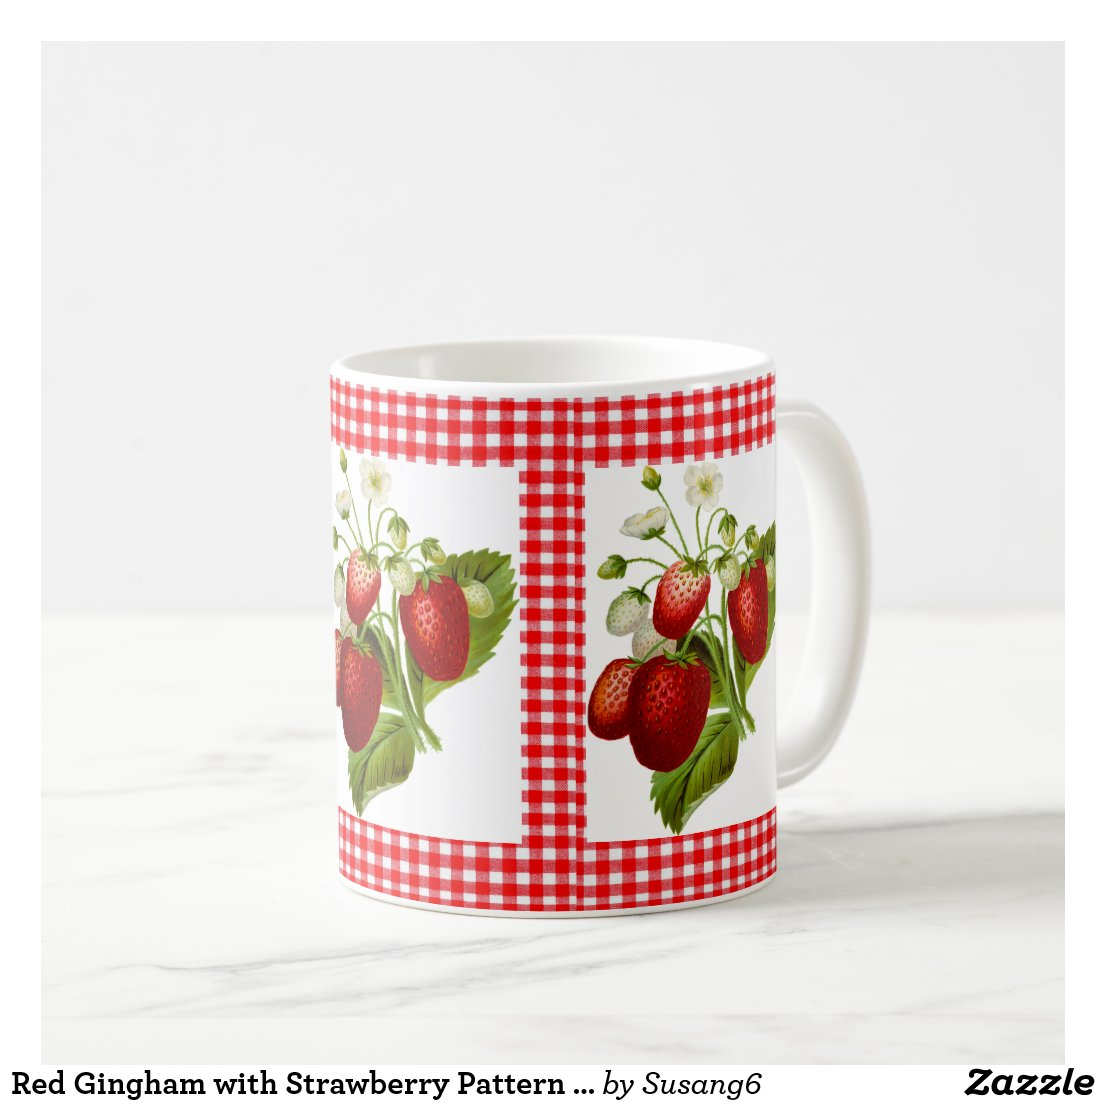 Red Gingham with Strawberry Pattern Coffee Mug